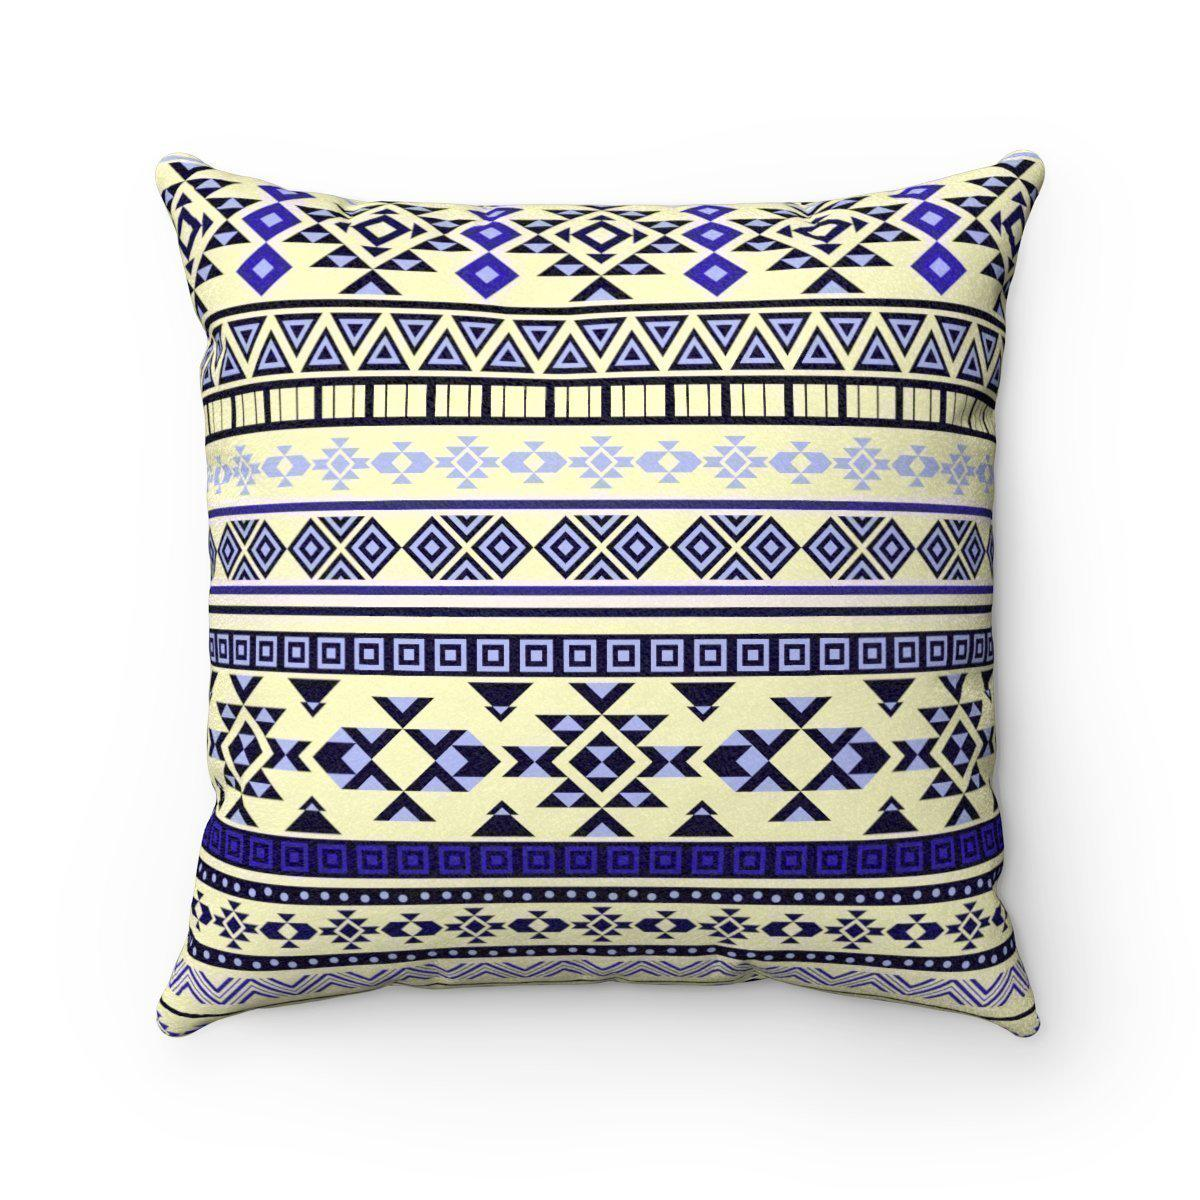 2 in 1 Double sided faux suede ethnic decorative pillow w/insert-Home Decor - Decorative Accents - Pillows & Throws - Decorative Pillows-Maison d'Elite-Très Elite